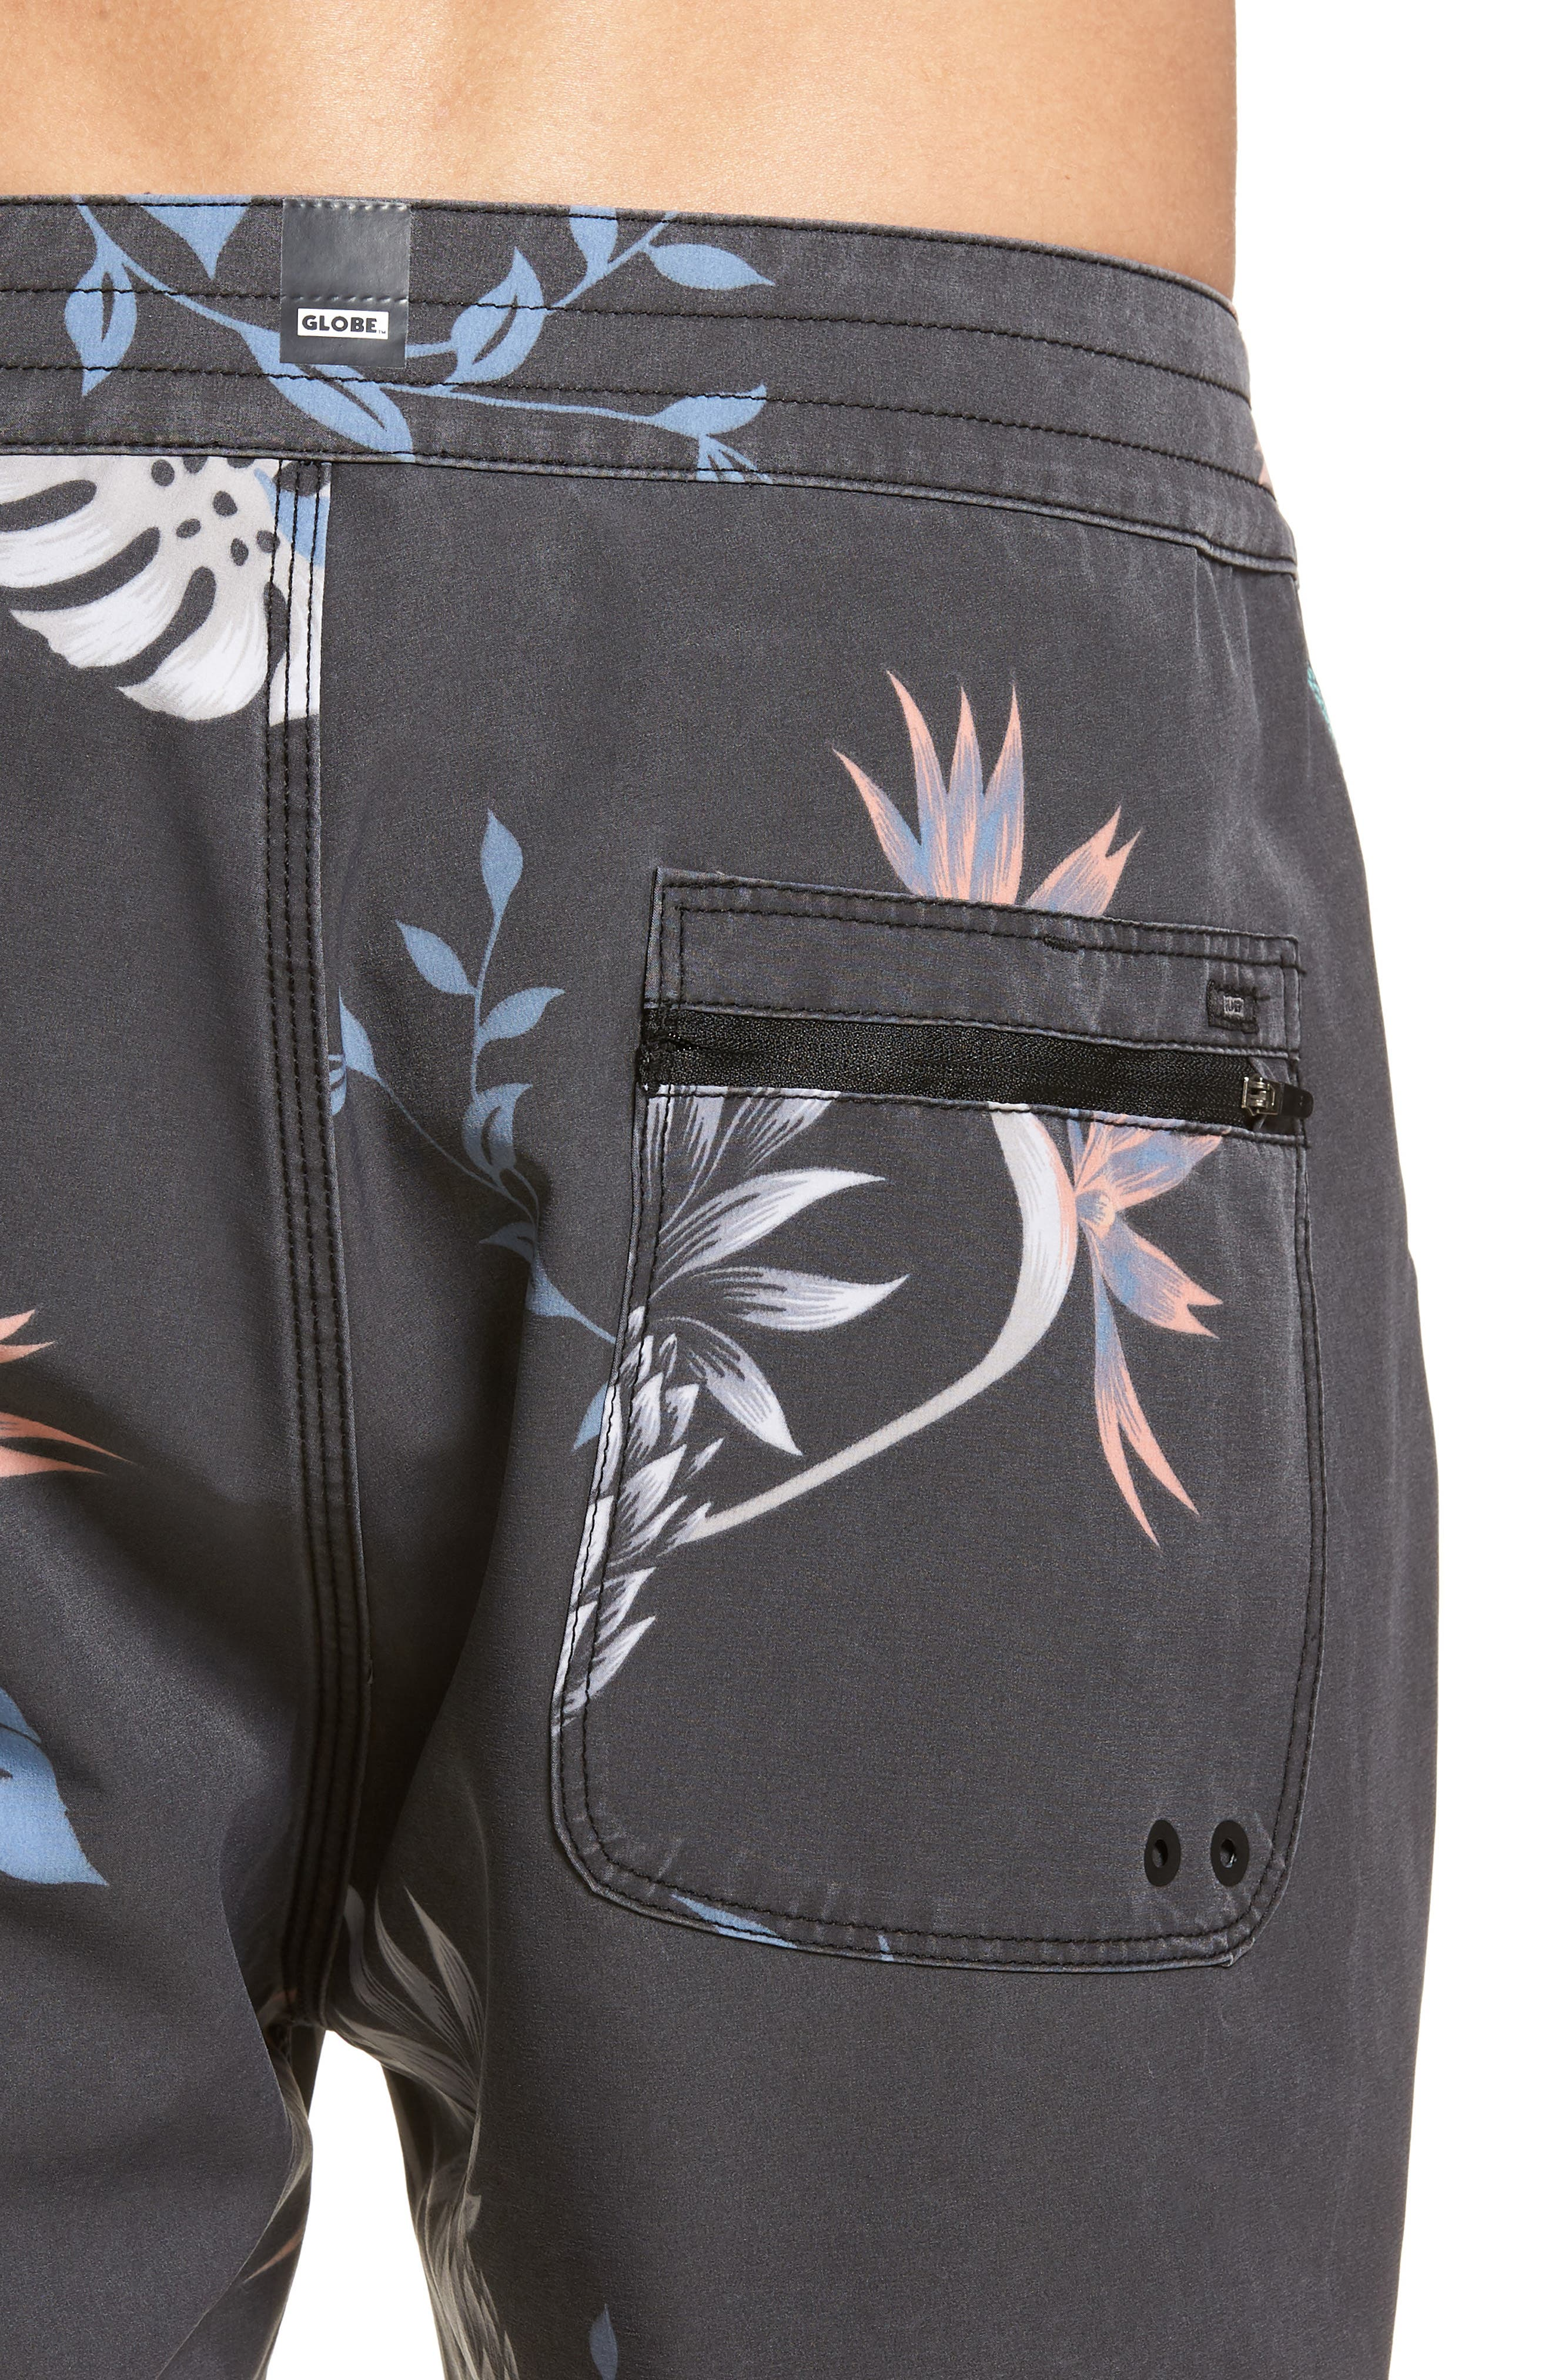 Shangri-La 3.0 Board Shorts,                             Alternate thumbnail 4, color,                             Granite